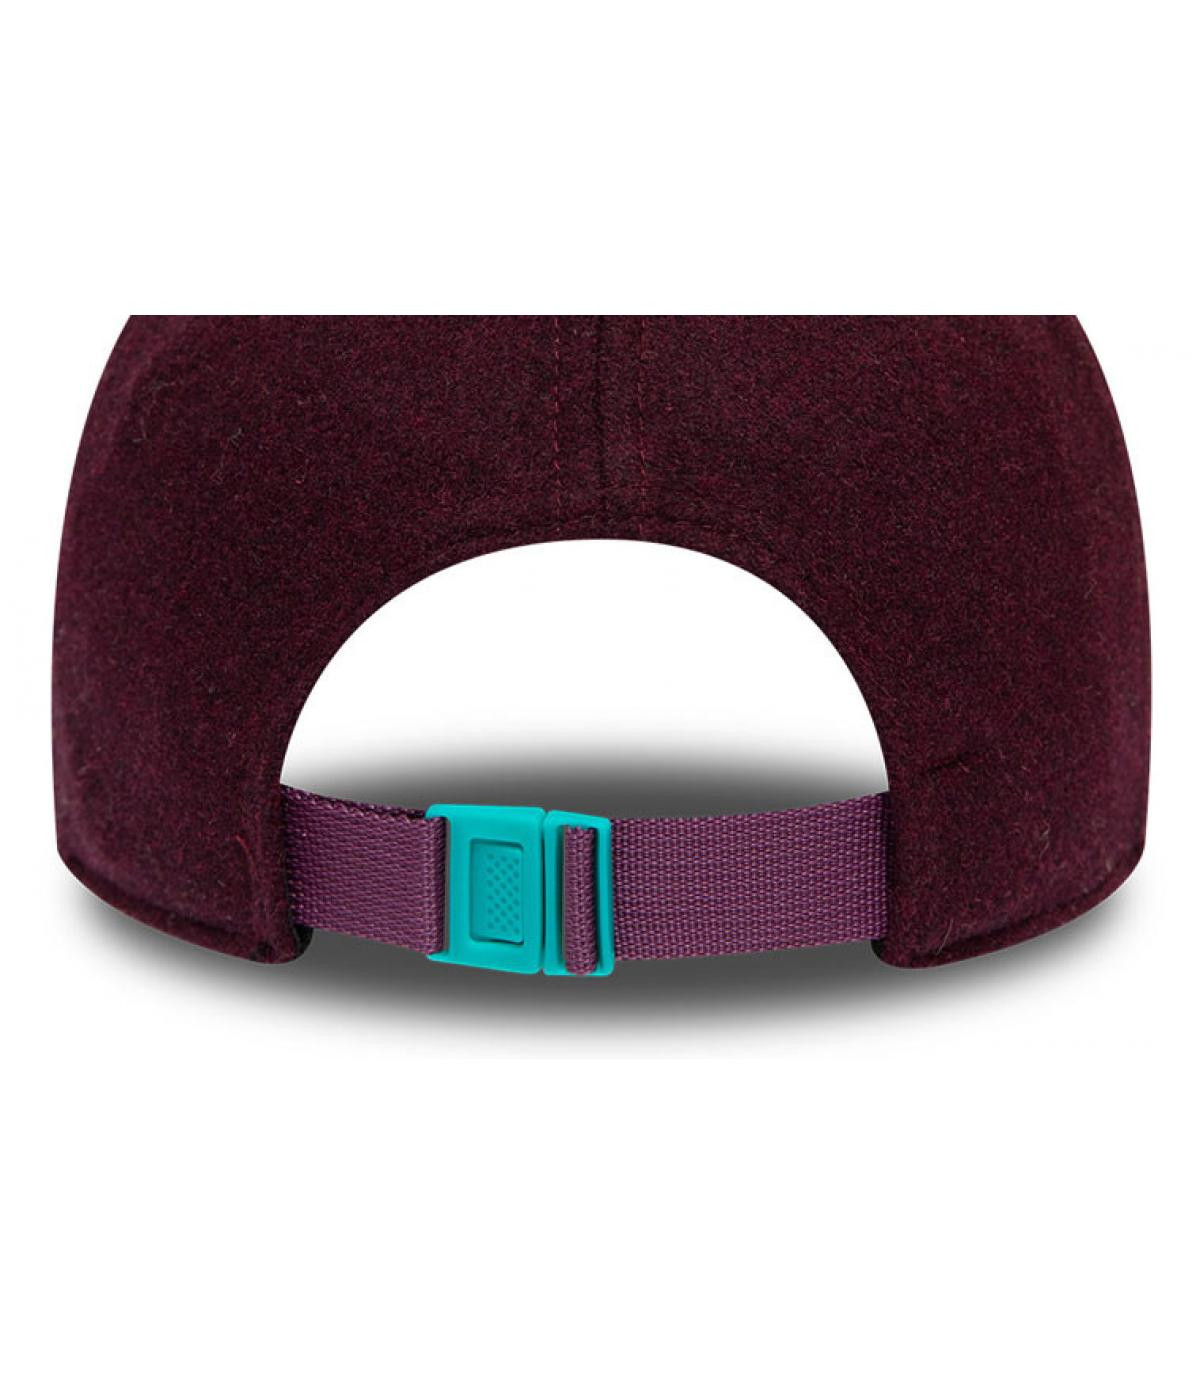 Détails Casquette MLB Melton NY 940 graphite maroon teal - image 4